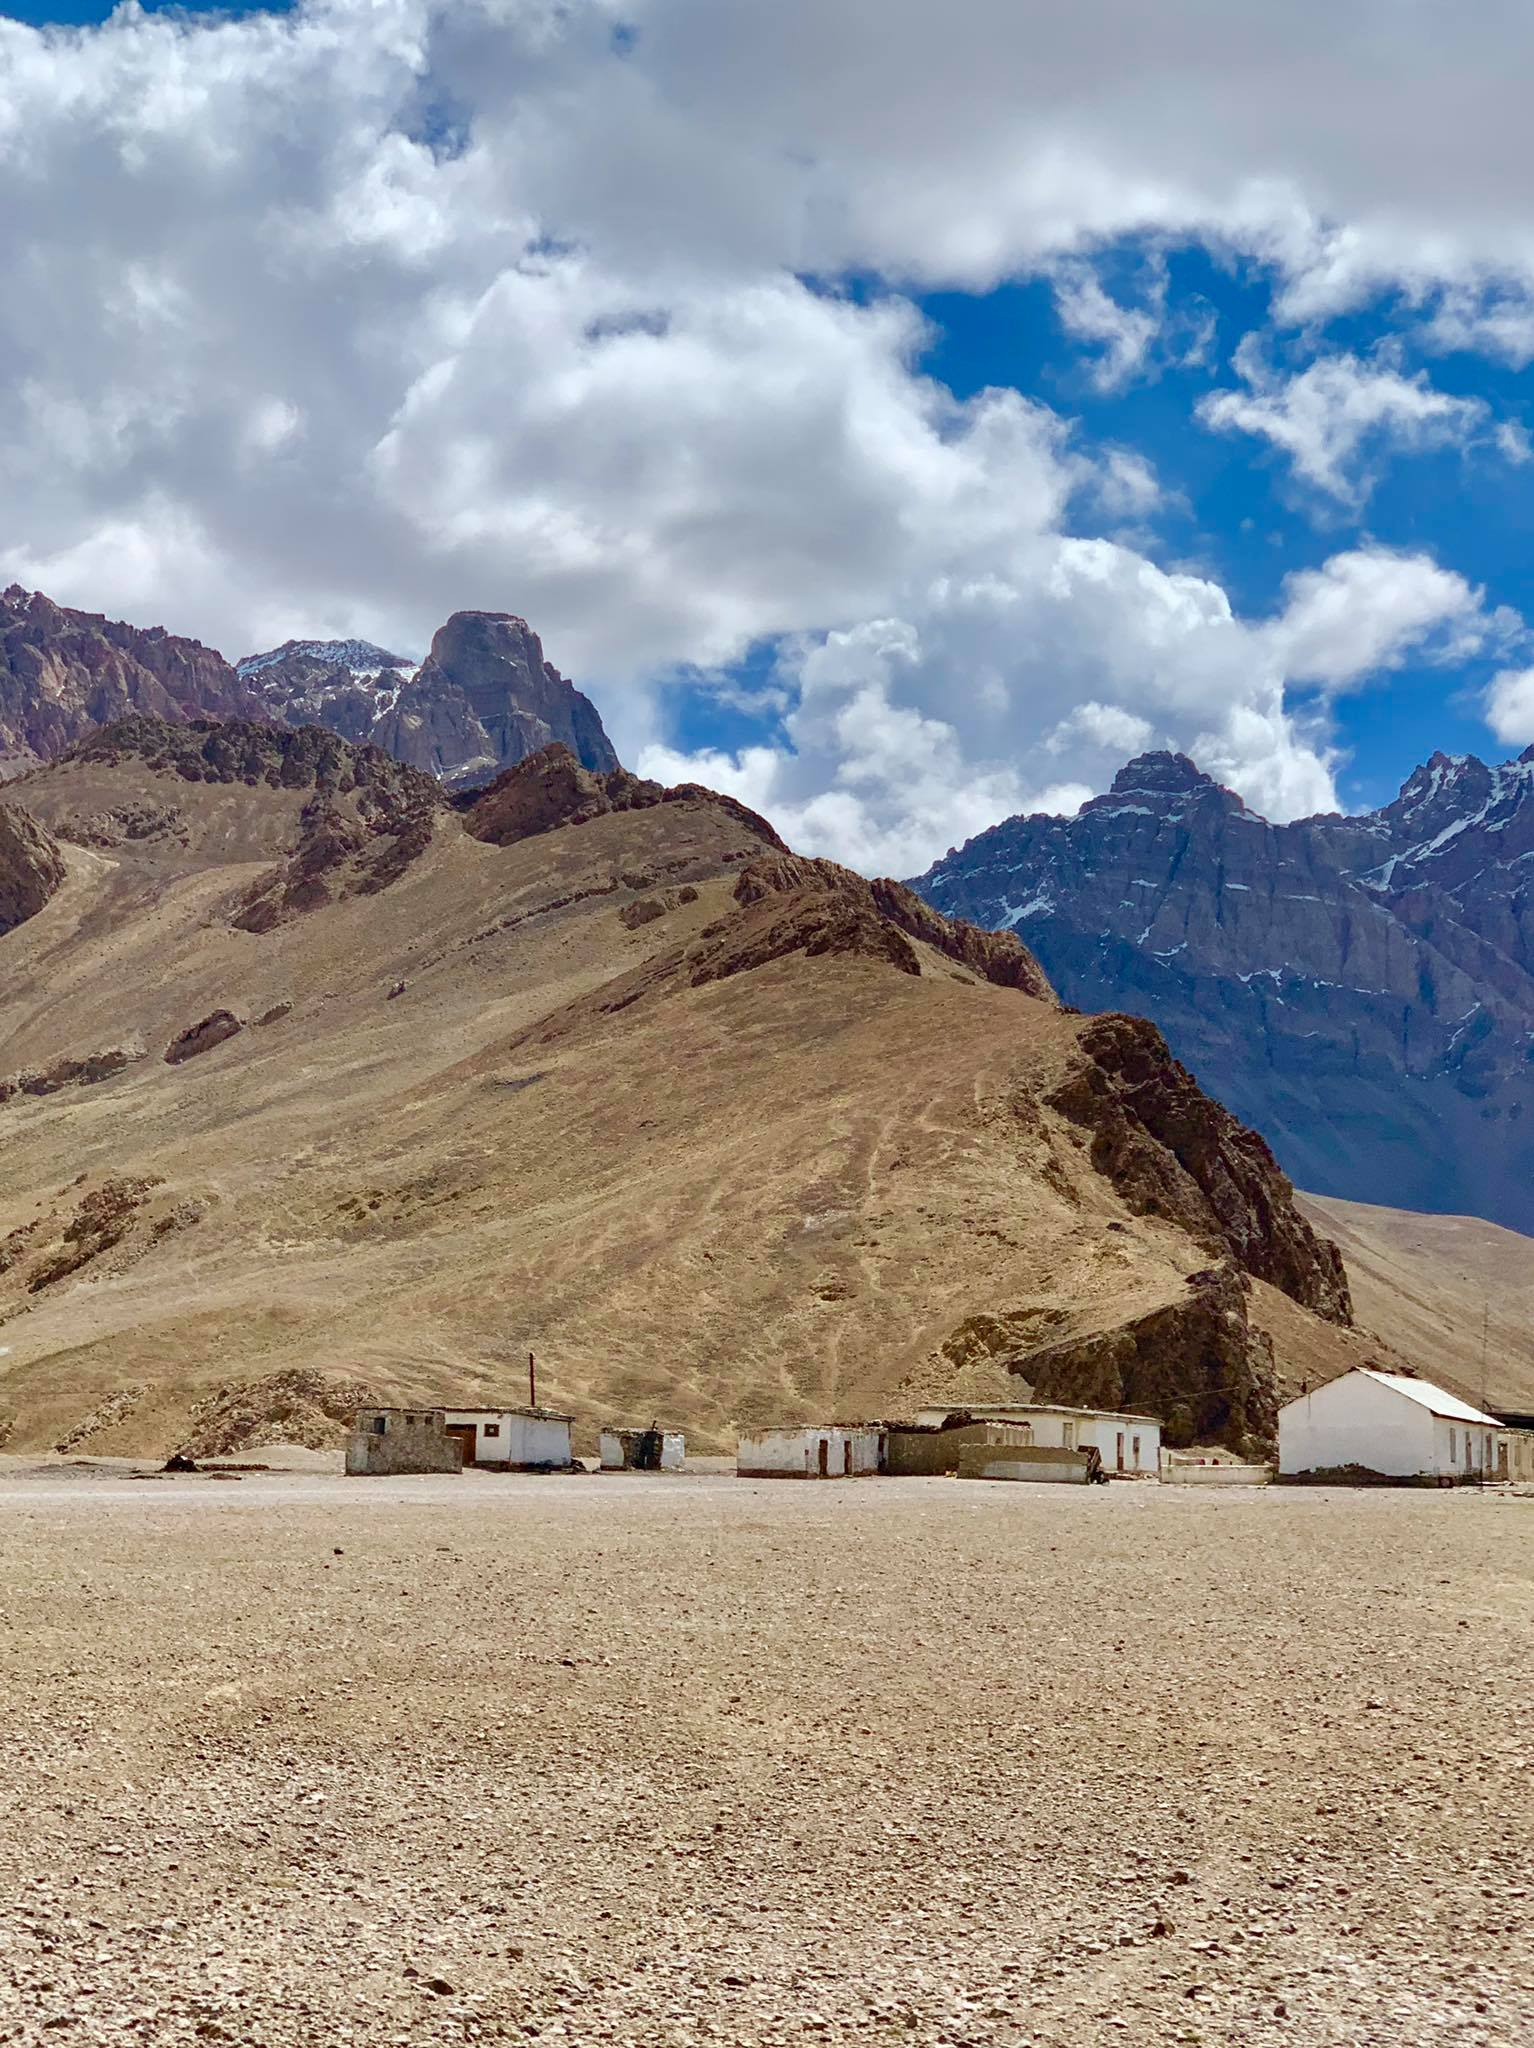 Kach Solo Travels in 2019 Our unexpected last stop during our Pamir Highway Roadtrip7.jpg